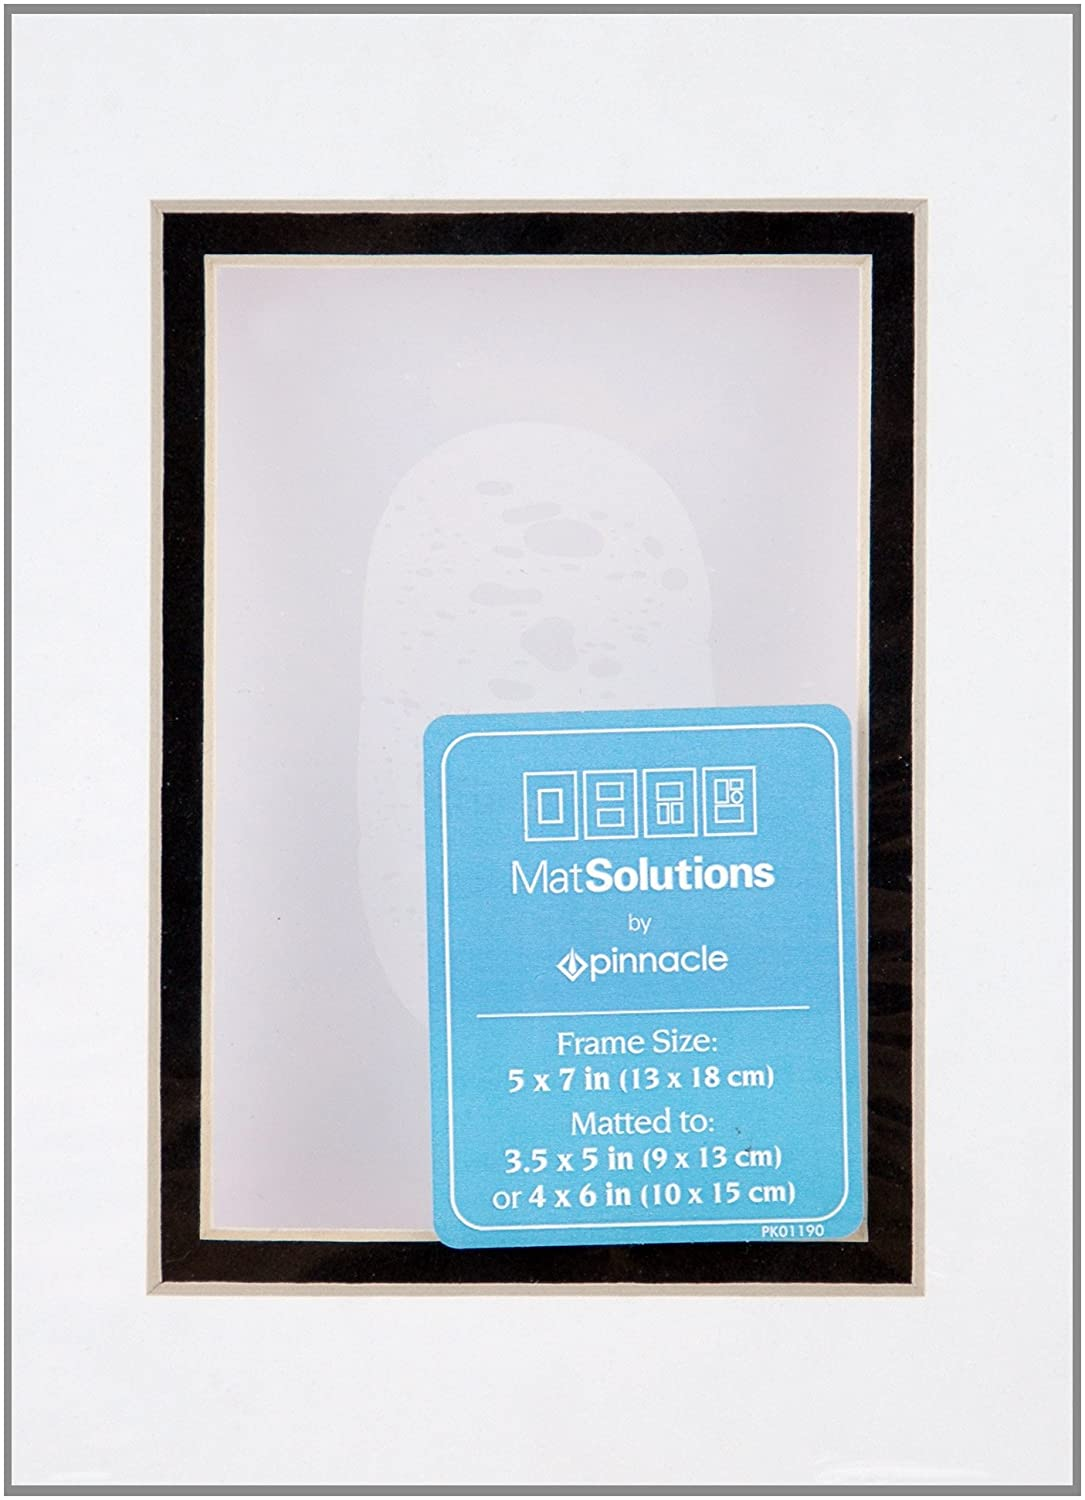 Gallery Solutions White and Black Custom Bevel Cut Double Mat for 11x14 Picture Frame with 8x10 Opening NBG Home DM1114WB